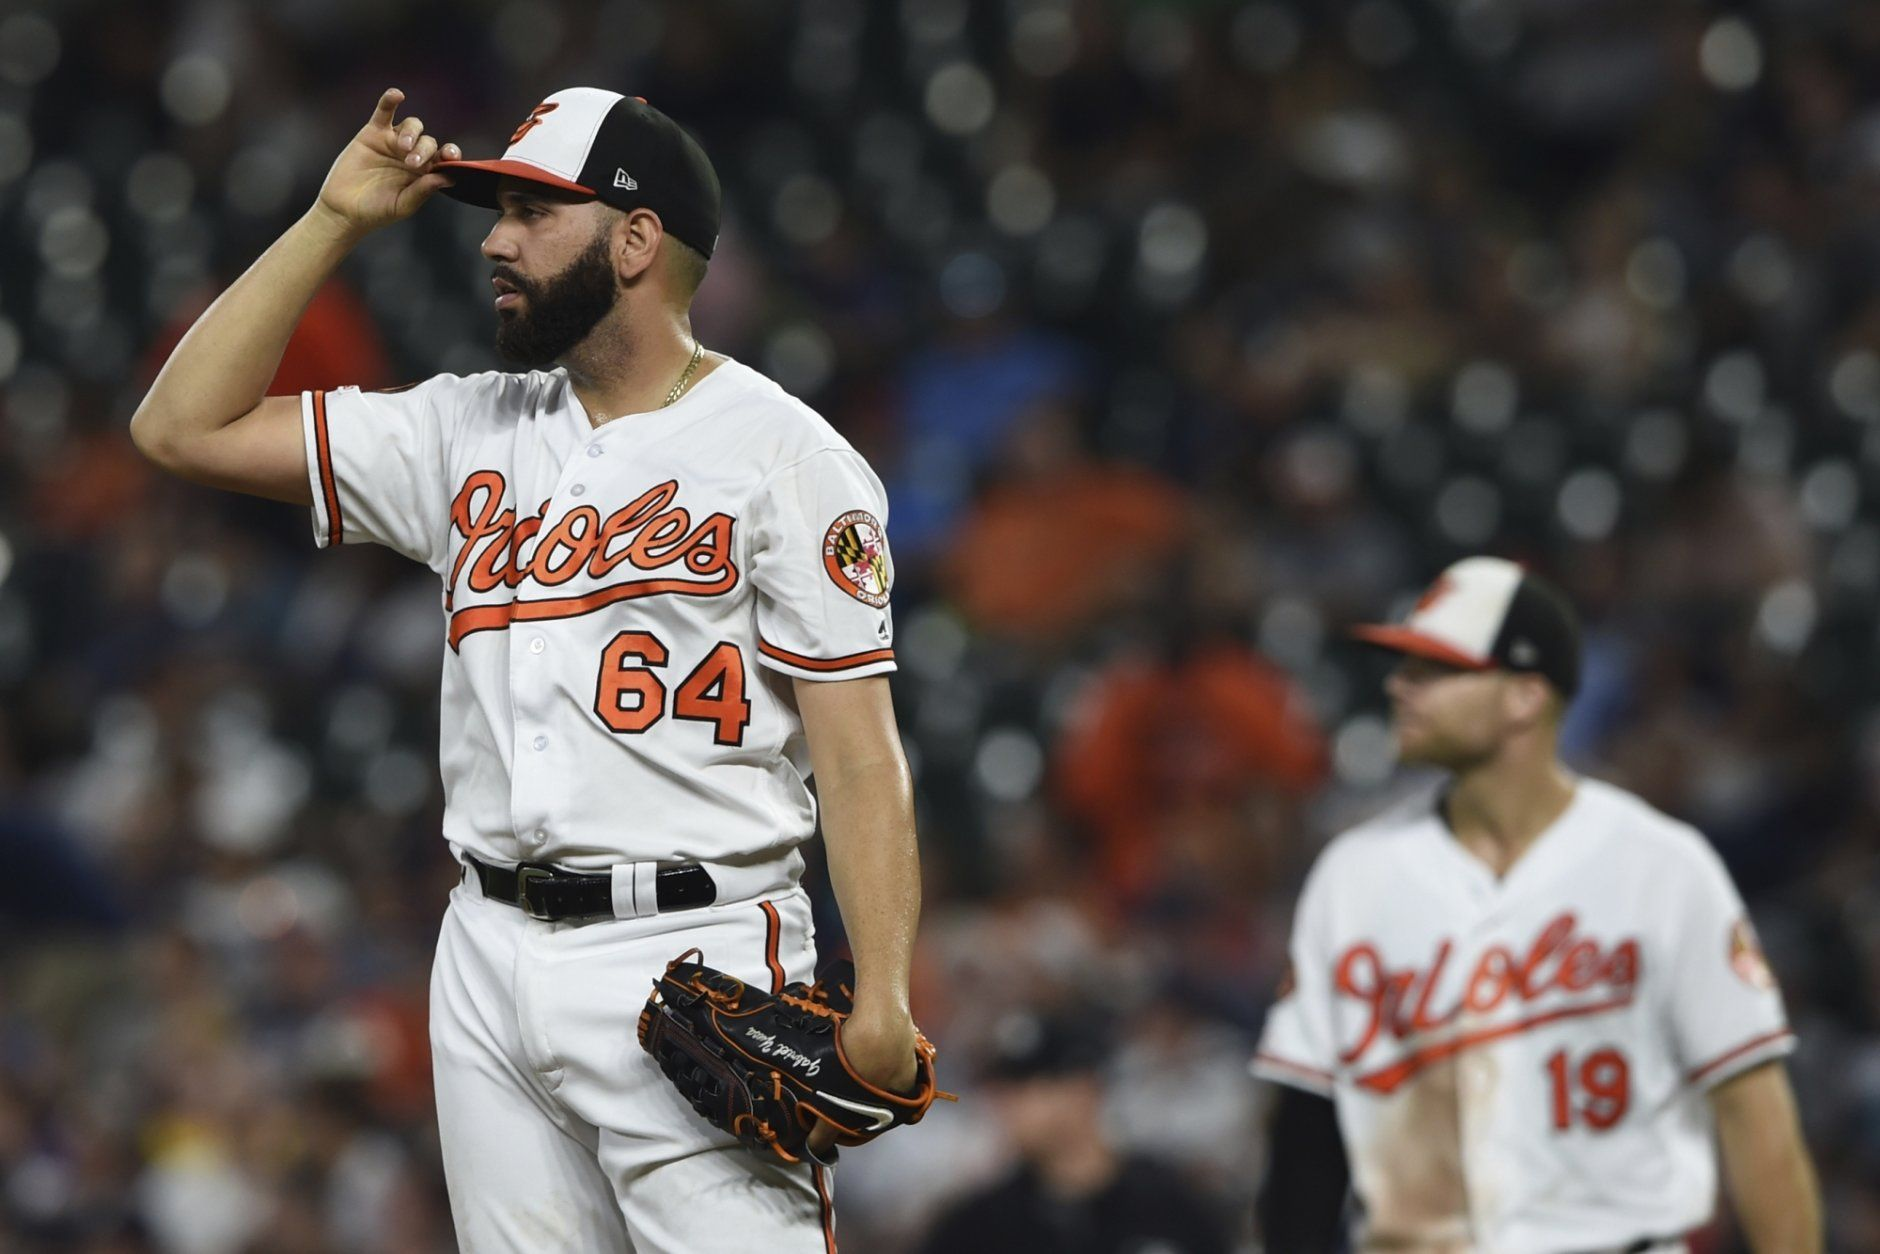 Baltimore Orioles pitcher Gabriel Ynoa looks to the outfield after giving up three runs to the New York Yankees in the third inning of a baseball game, Monday, Aug. 5, 2019, in Baltimore. (AP Photo/Gail Burton)